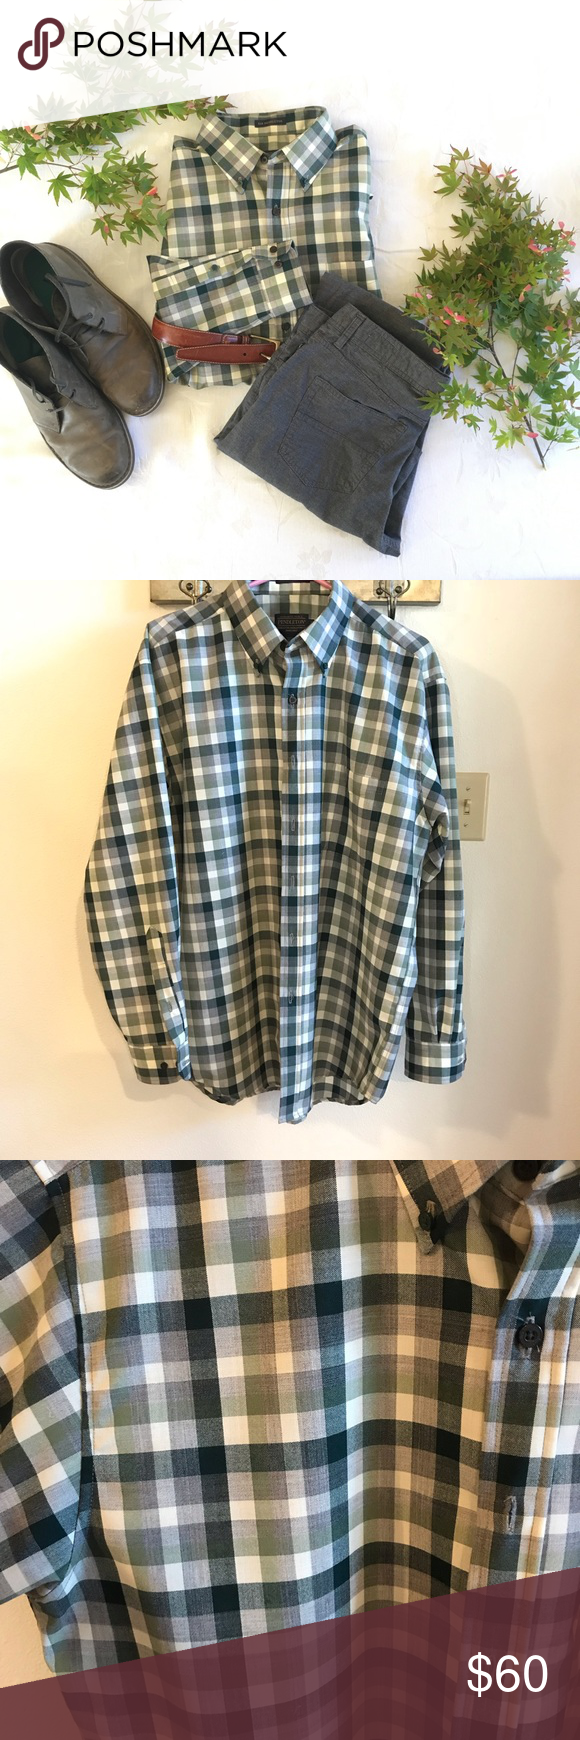 """6cc7248869 Pendleton plaid shirt NWOT Green and off white plaid """"Warranted to be a  Pendleton"""" Dress shirt. Super soft and not itchy at all. Green"""